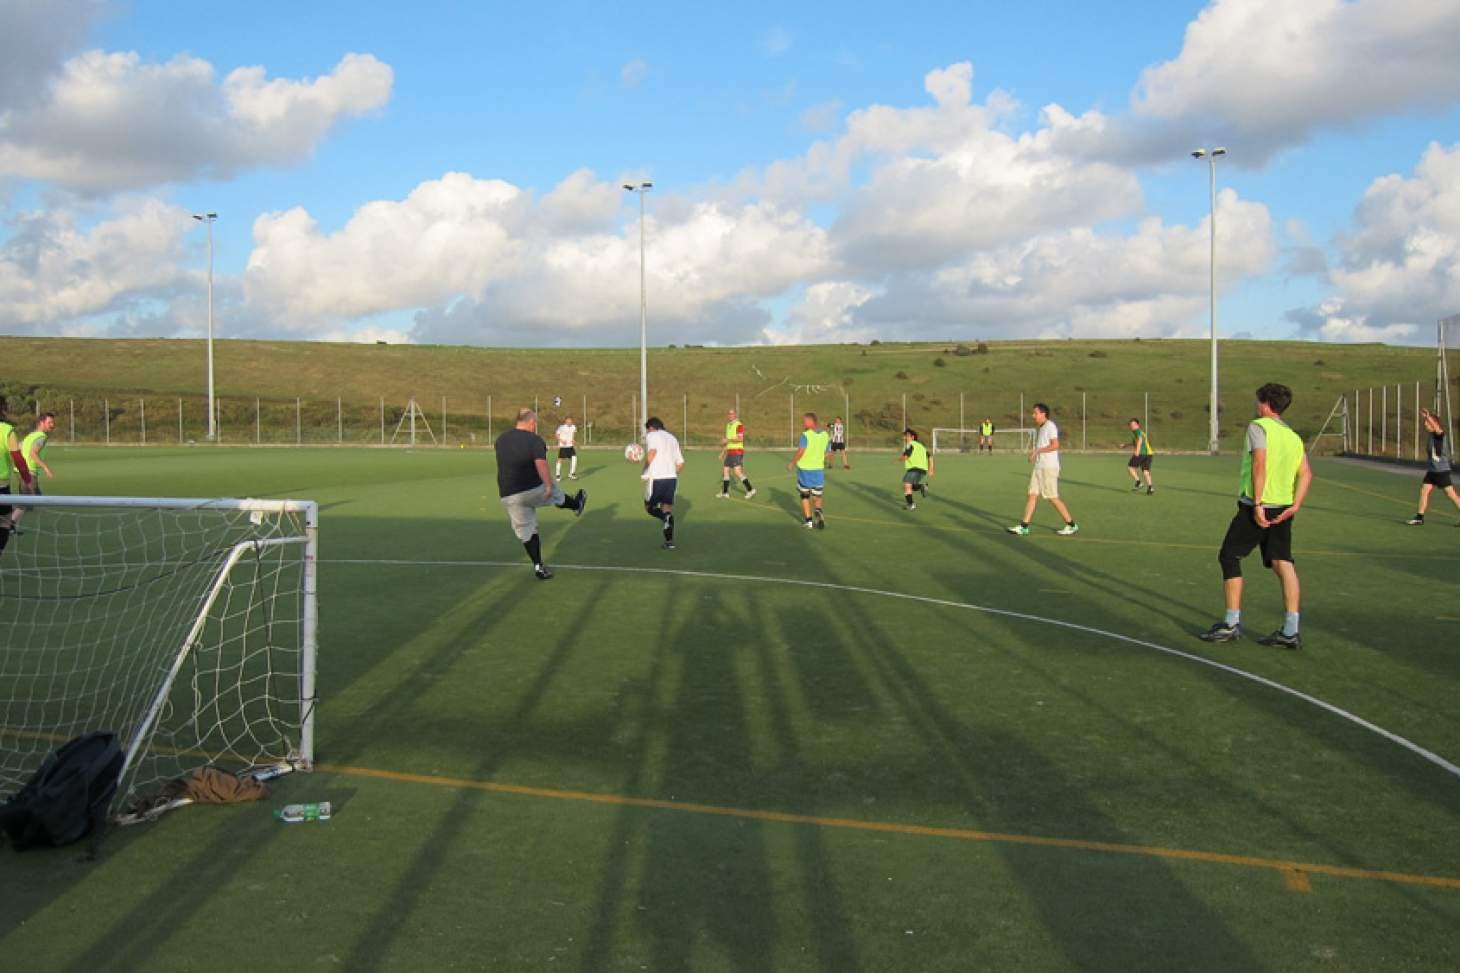 Stanley Deason Leisure Centre 5 a side | Astroturf football pitch